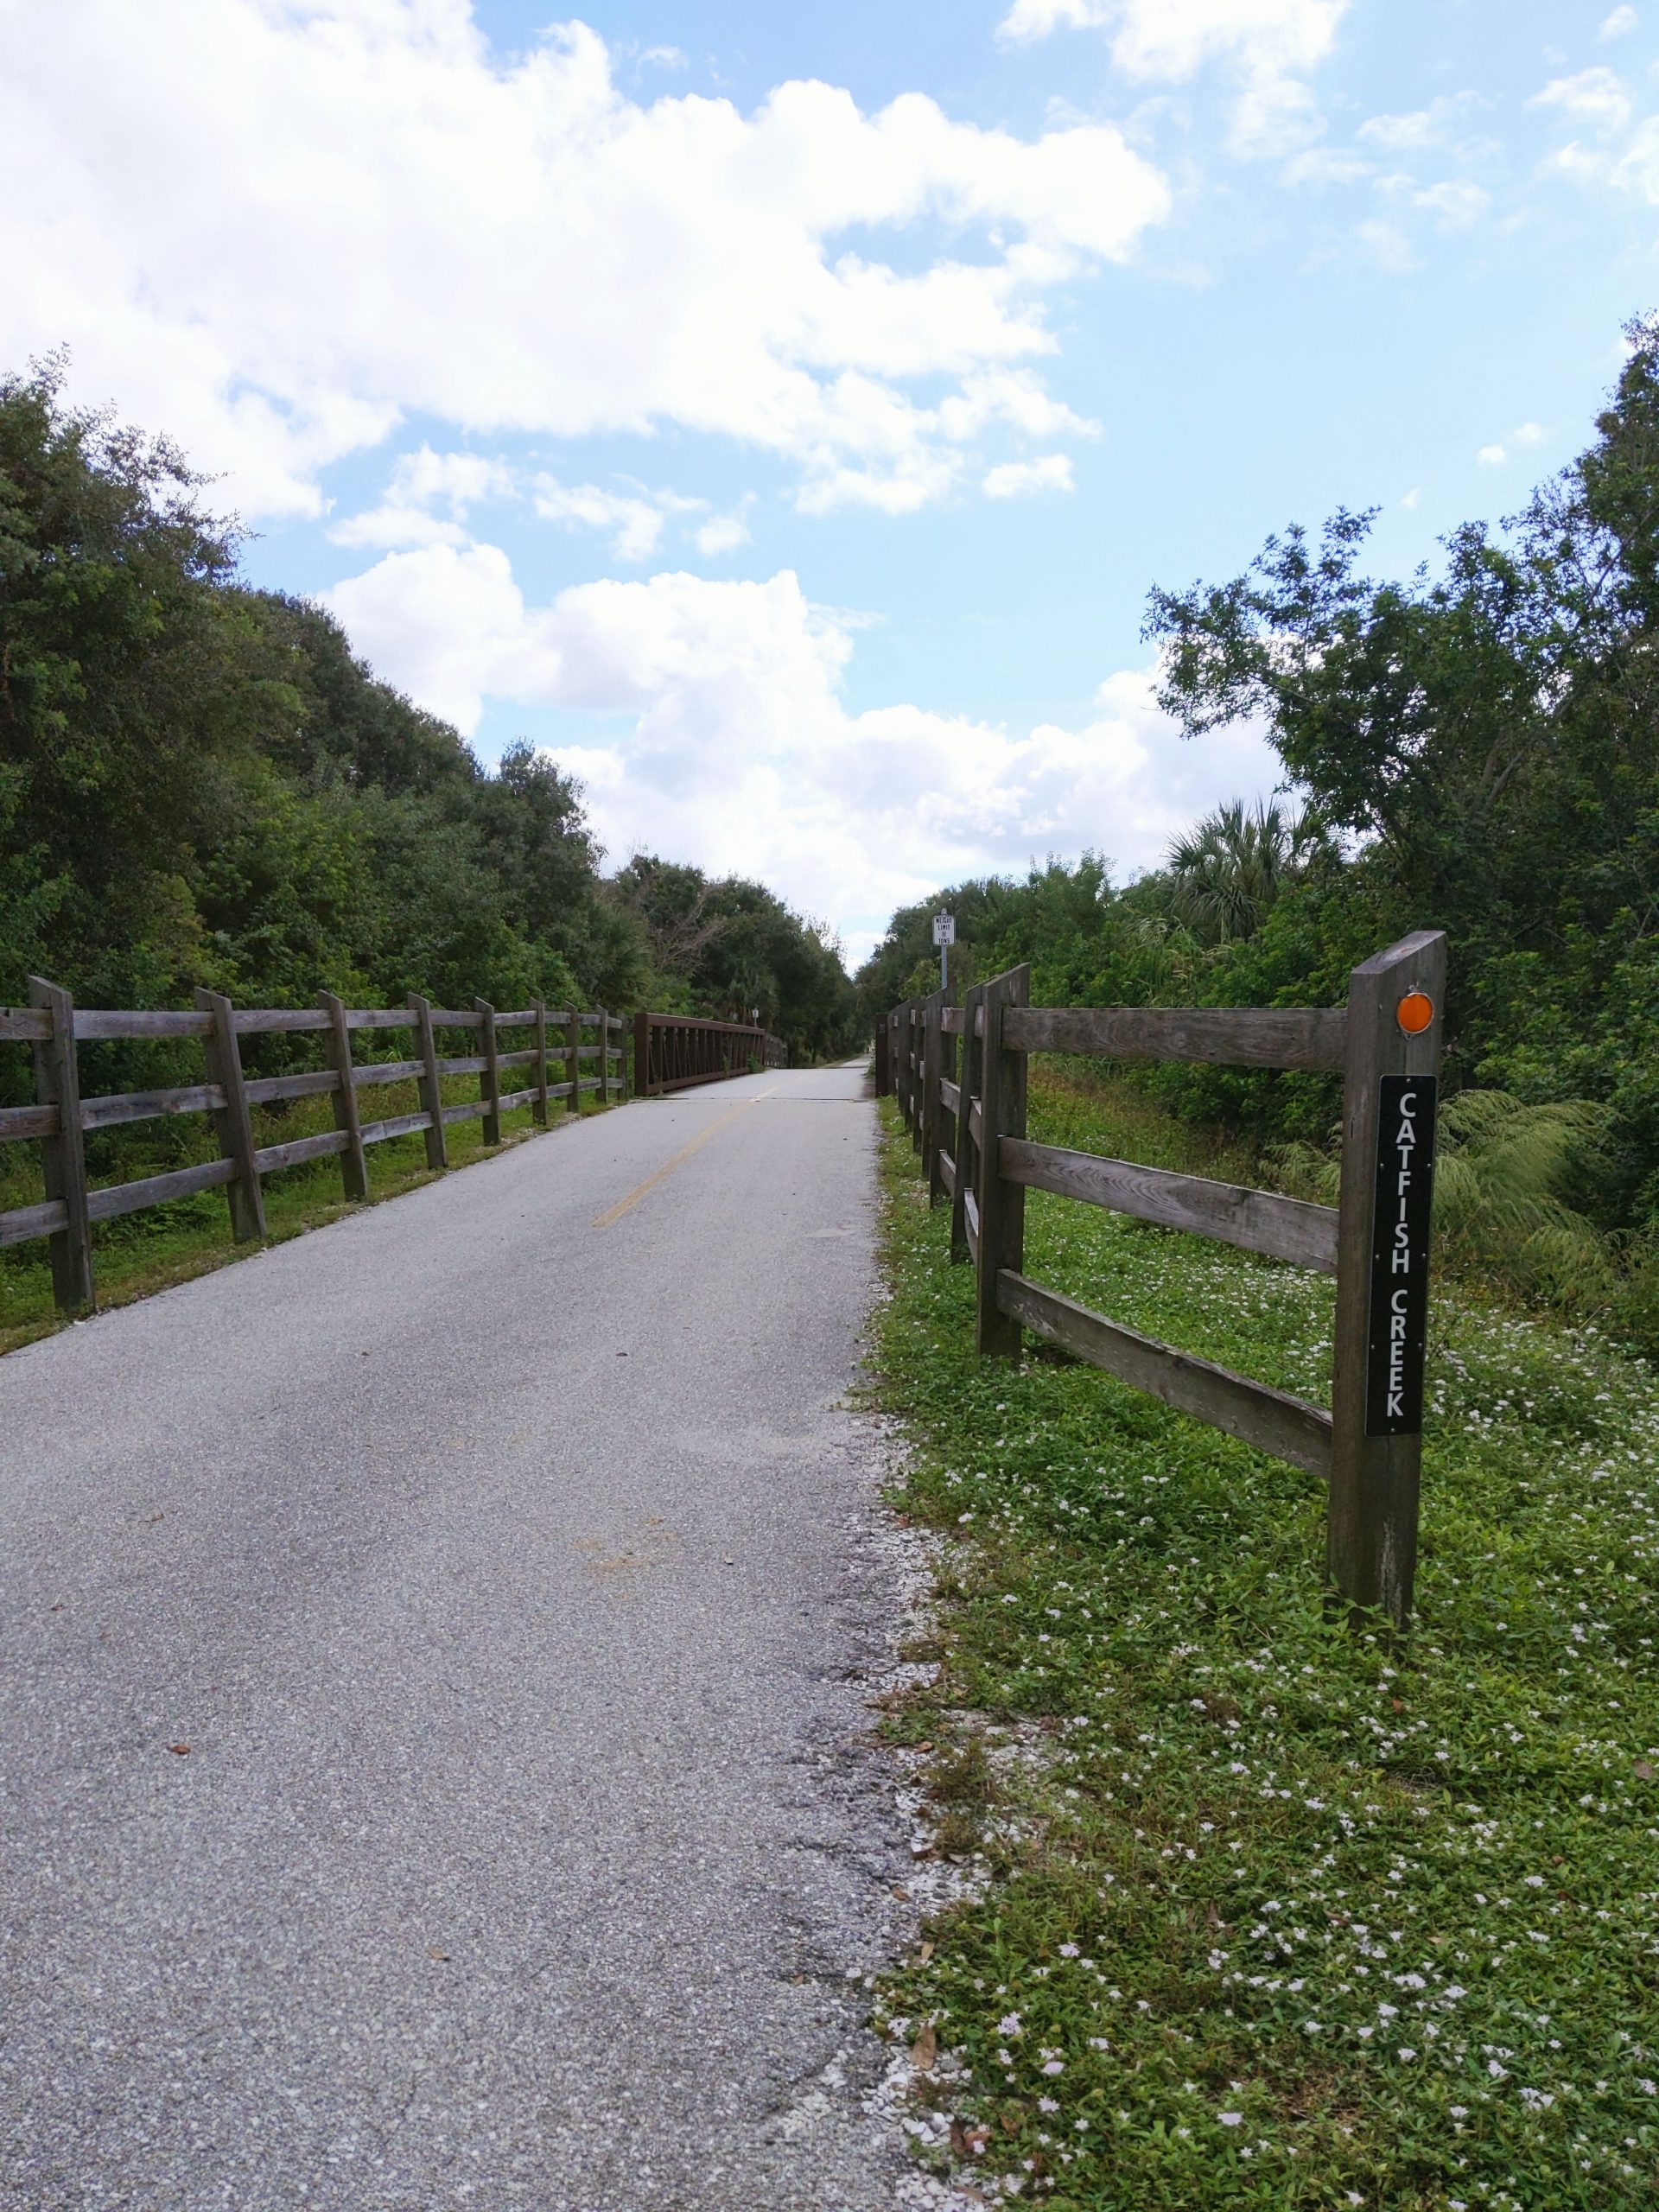 Catfish Creek Bridge at the Legacy Trail in Sarasota County